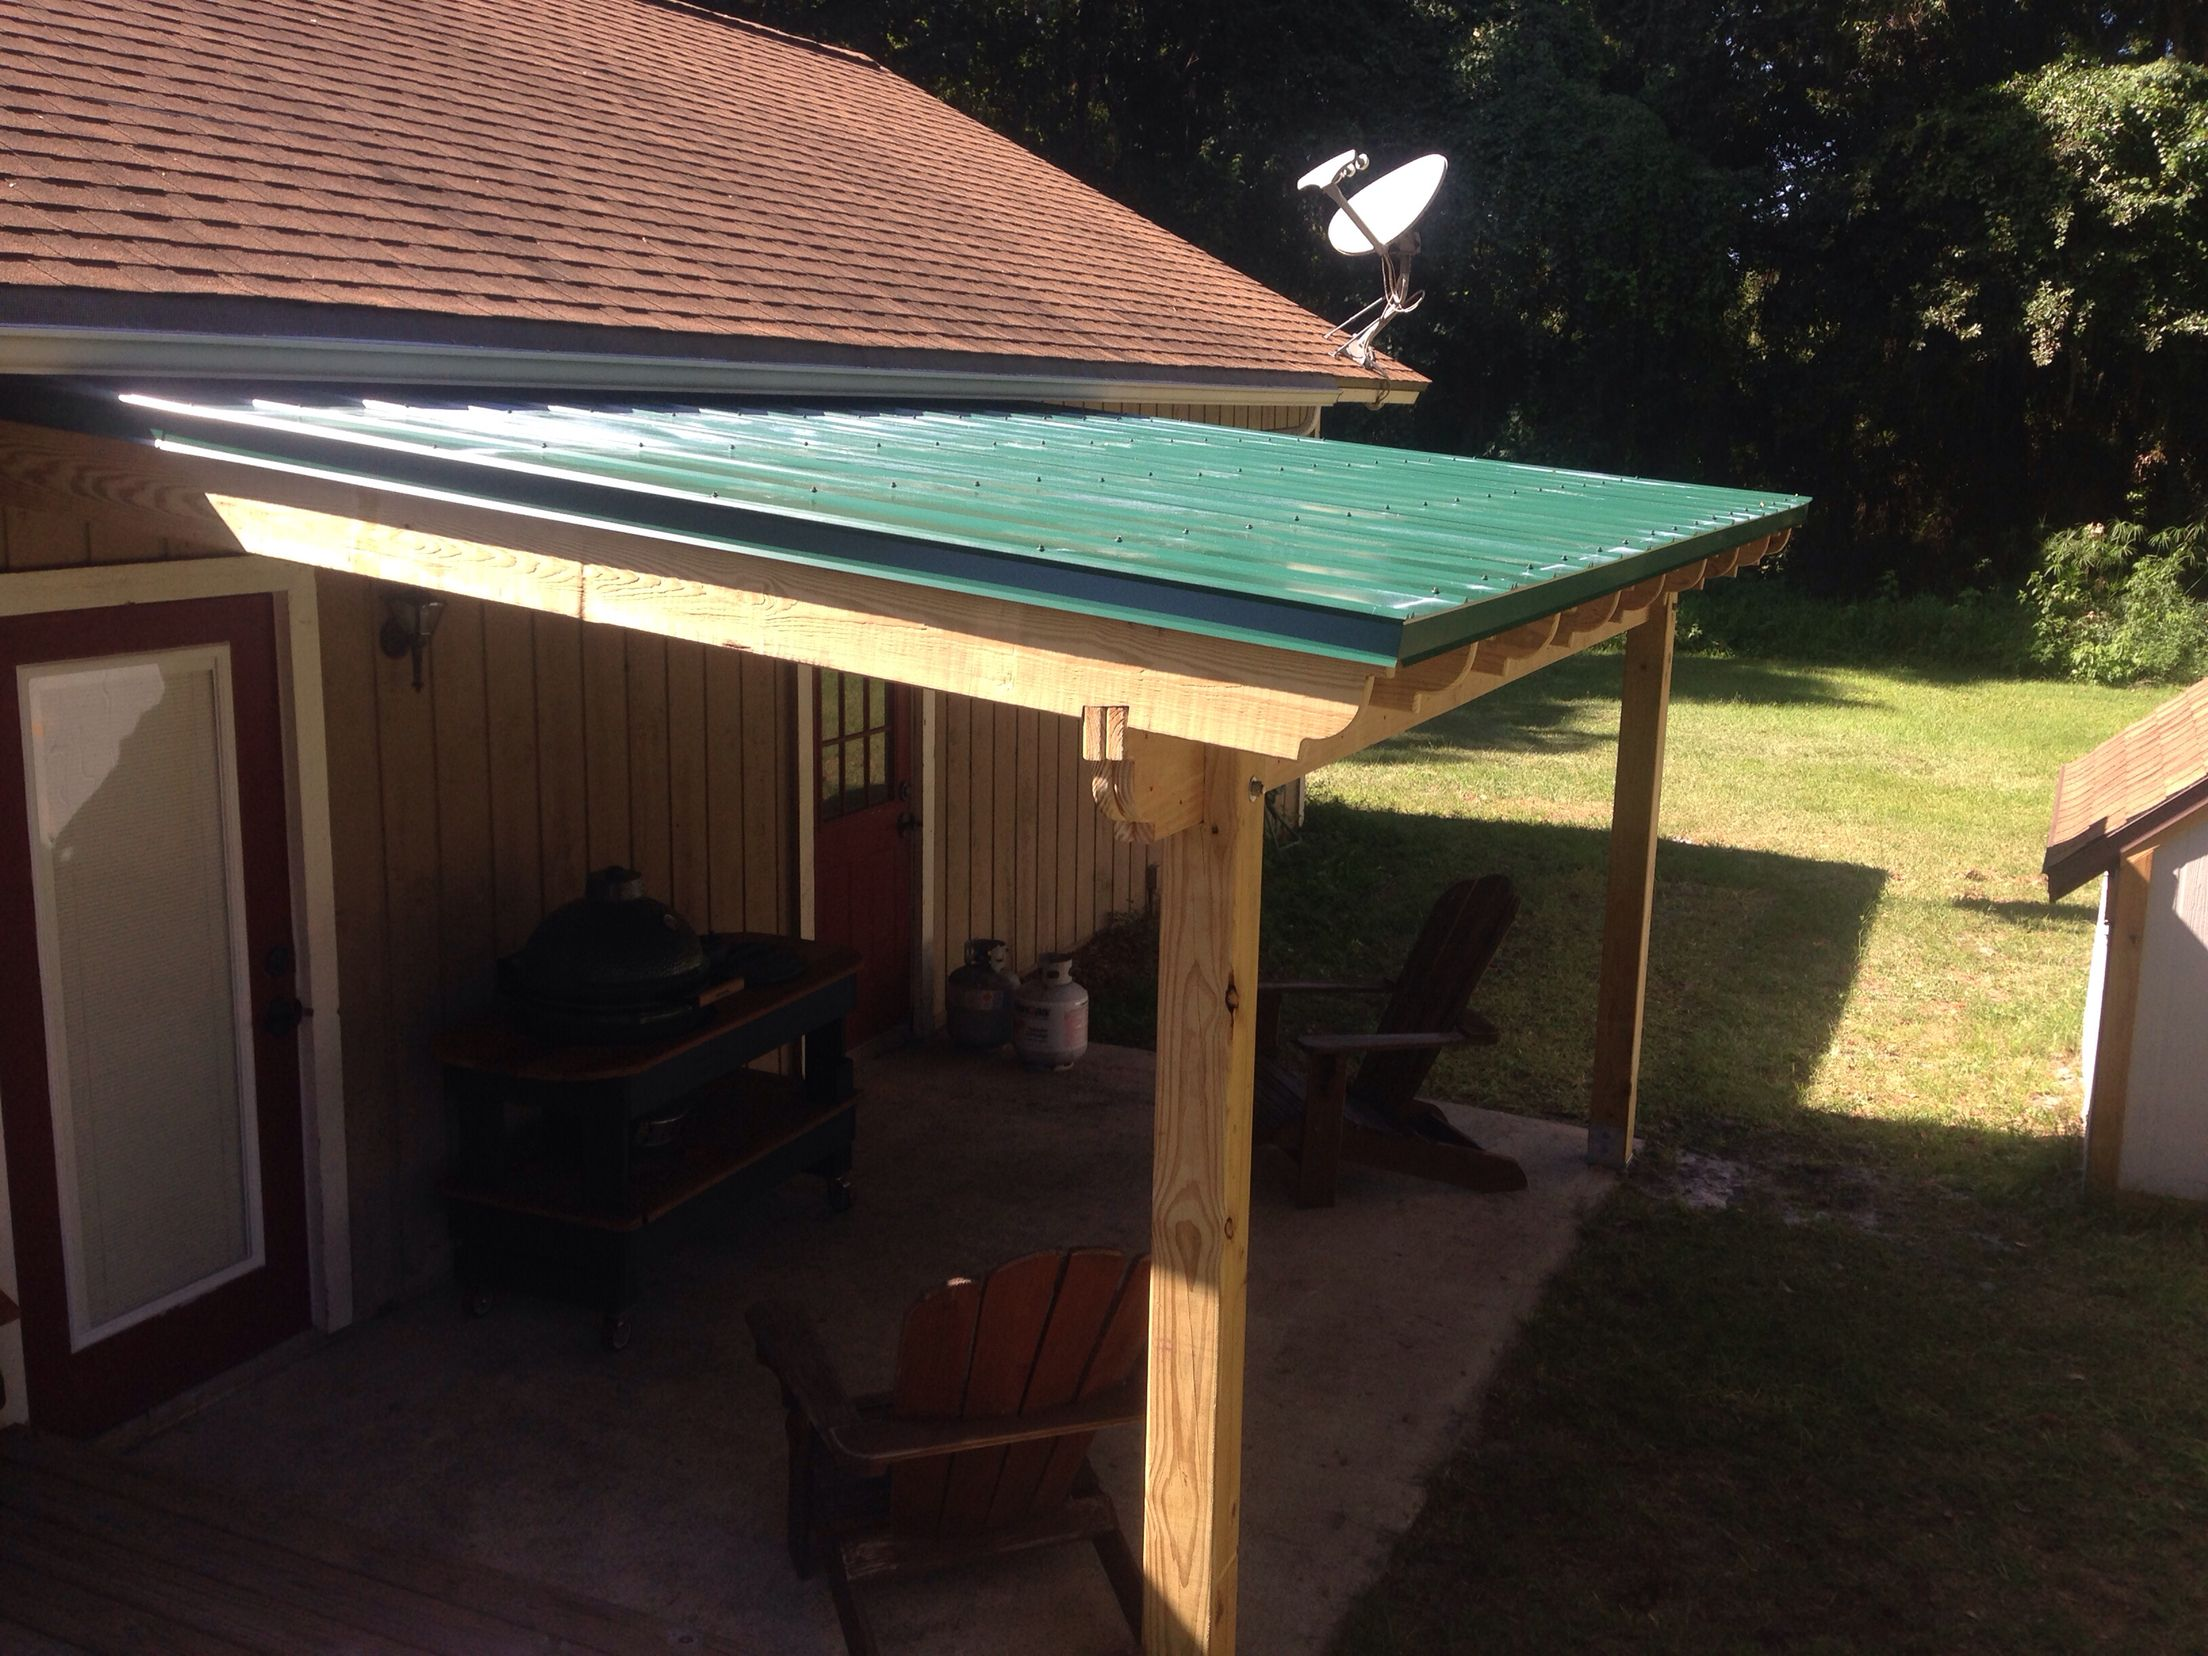 Patio roof with Hunter green metal roofing covered deck covered